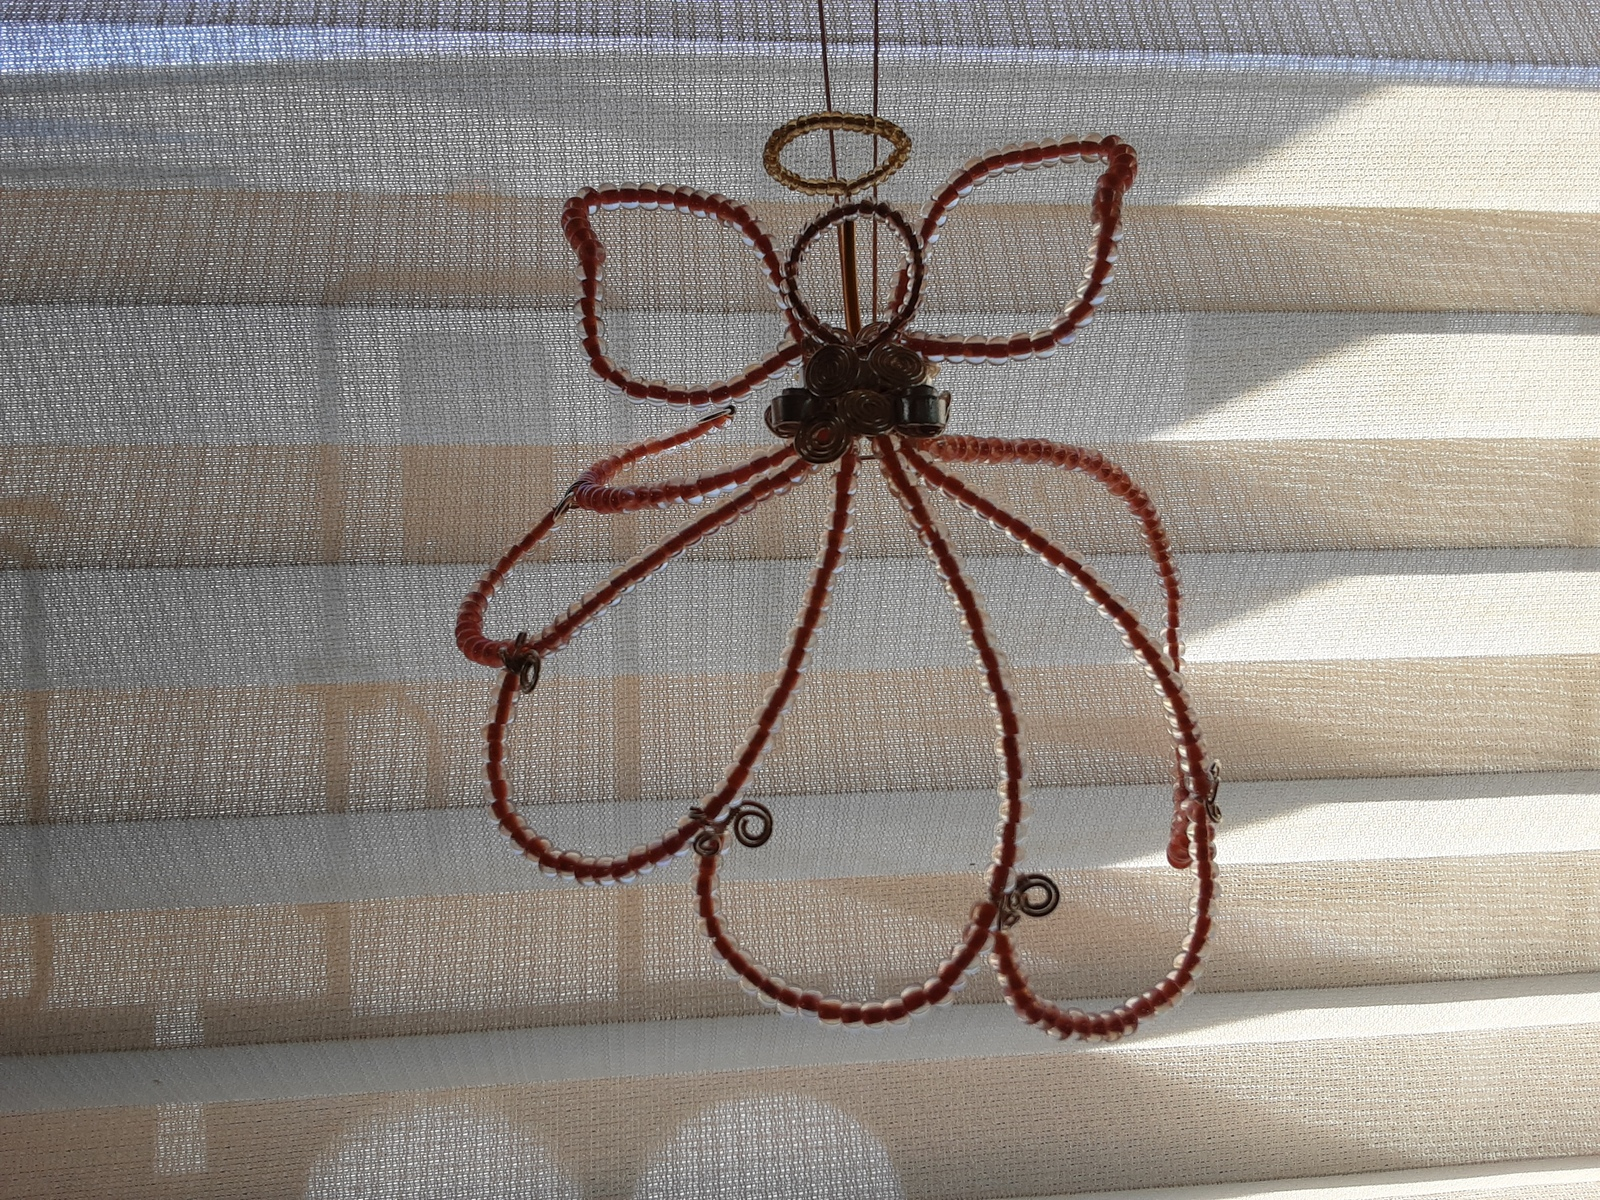 Angel Sun-catcher Ornament (hand-crafted, one-of-a-kind) image 8